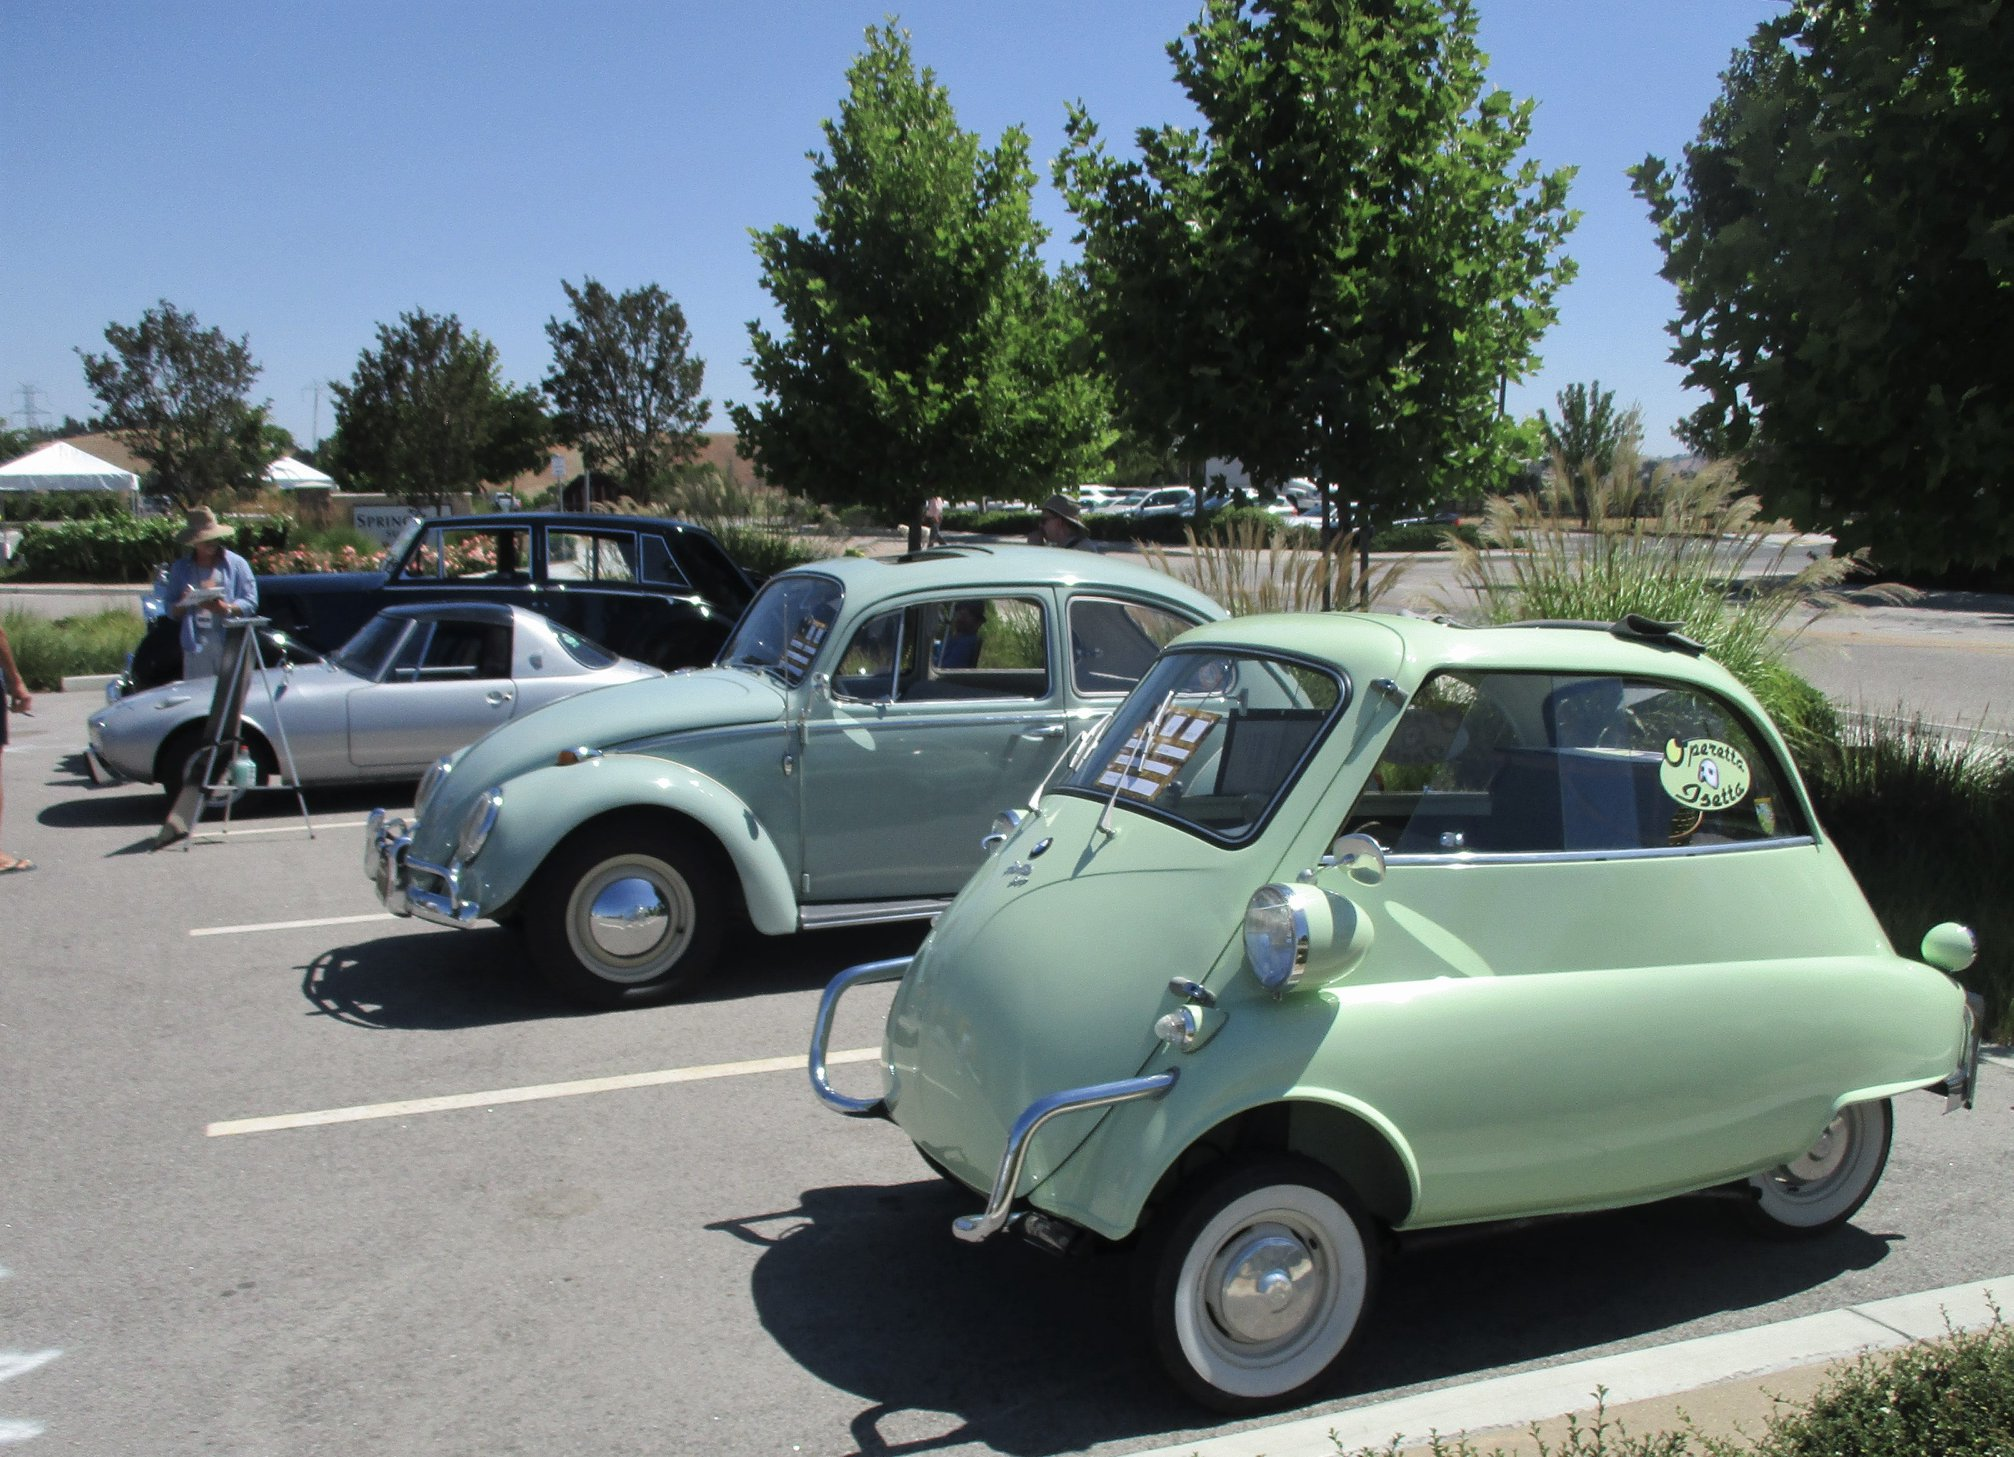 A Car Show - Isetta and Bug